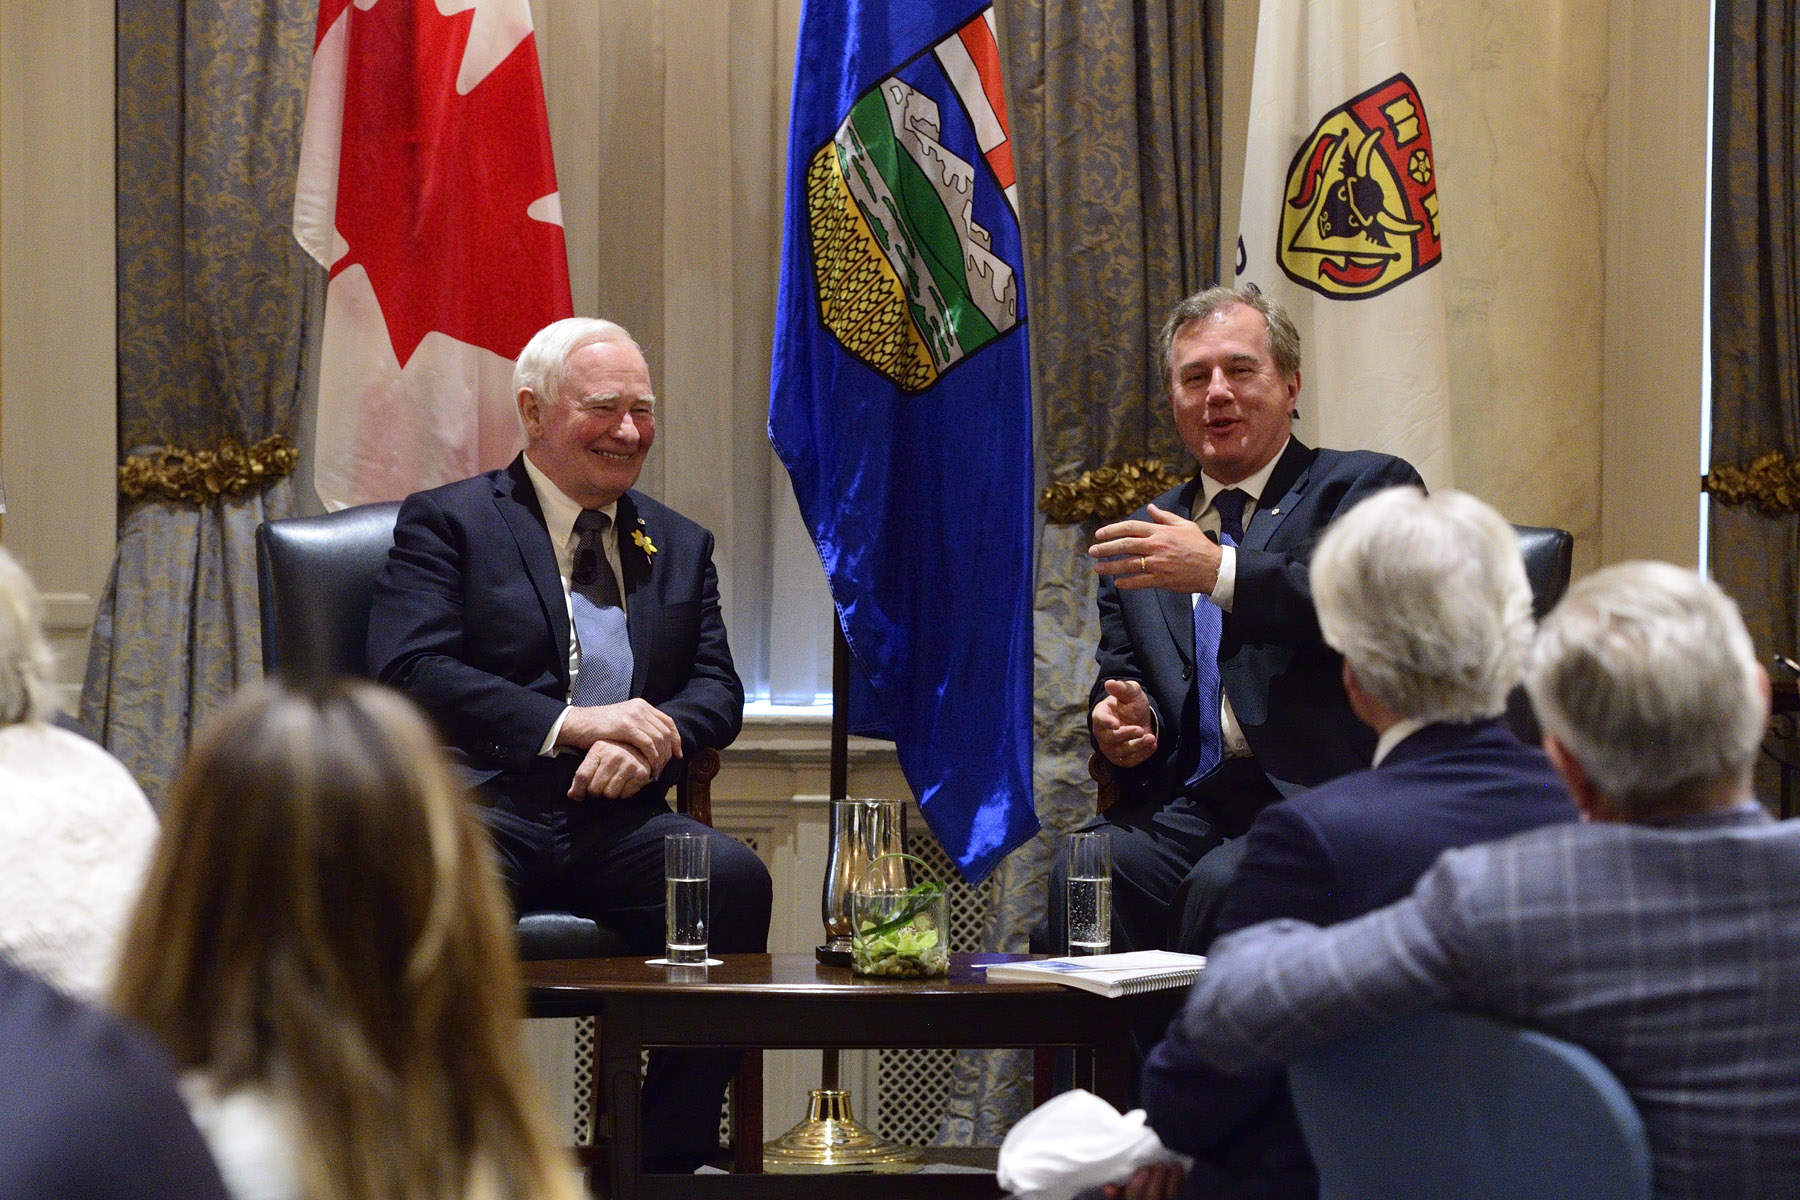 Earlier in the day, His Excellency and Mr. Jenkins participated to a luncheon event, organized by the University of Calgary's School of Public Policy, which served as an opportunity to discuss the history and future of innovation in Canada.